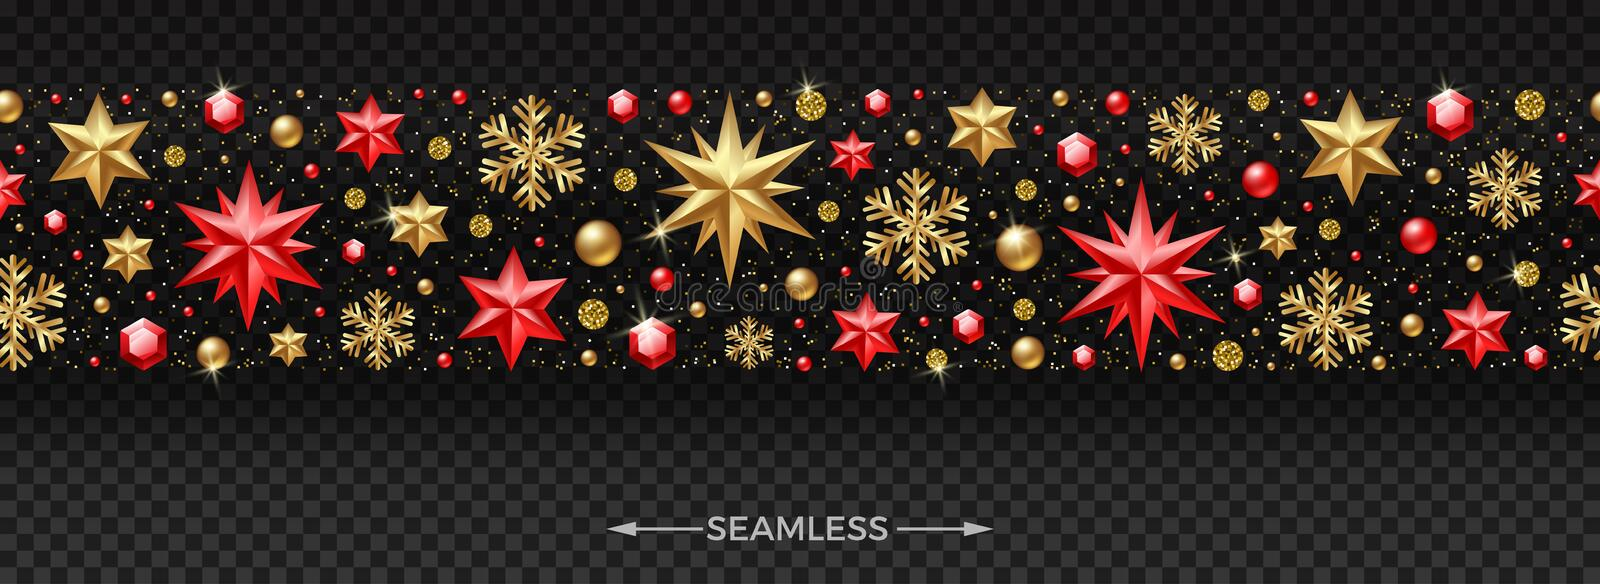 Christmas horizontal seamless pattern with Christmas decoration. Stars, ruby gems, golden snowflakes, beads and glitter gold vector illustration